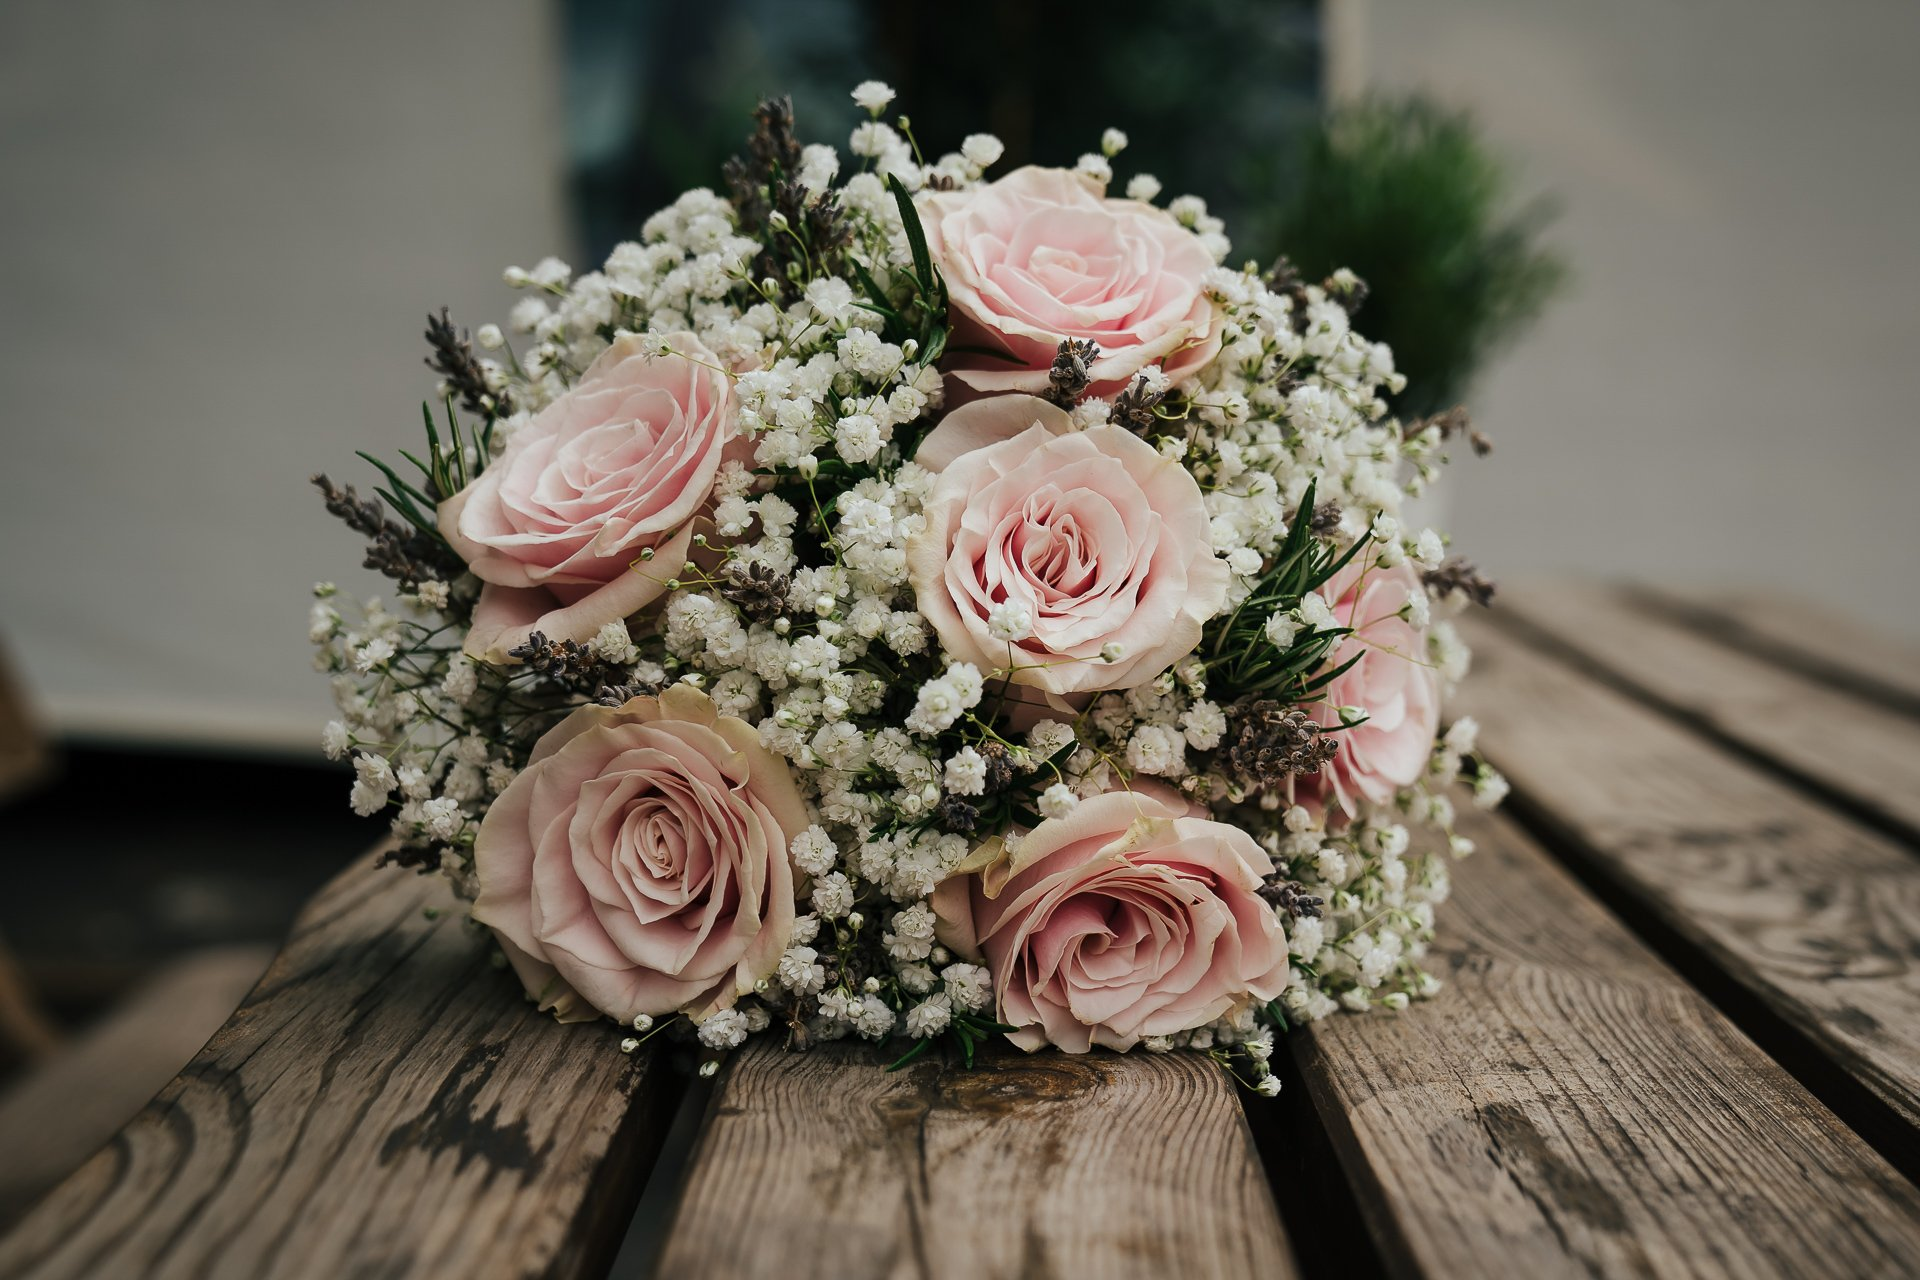 Stunning pale pink and white bridal bouquet